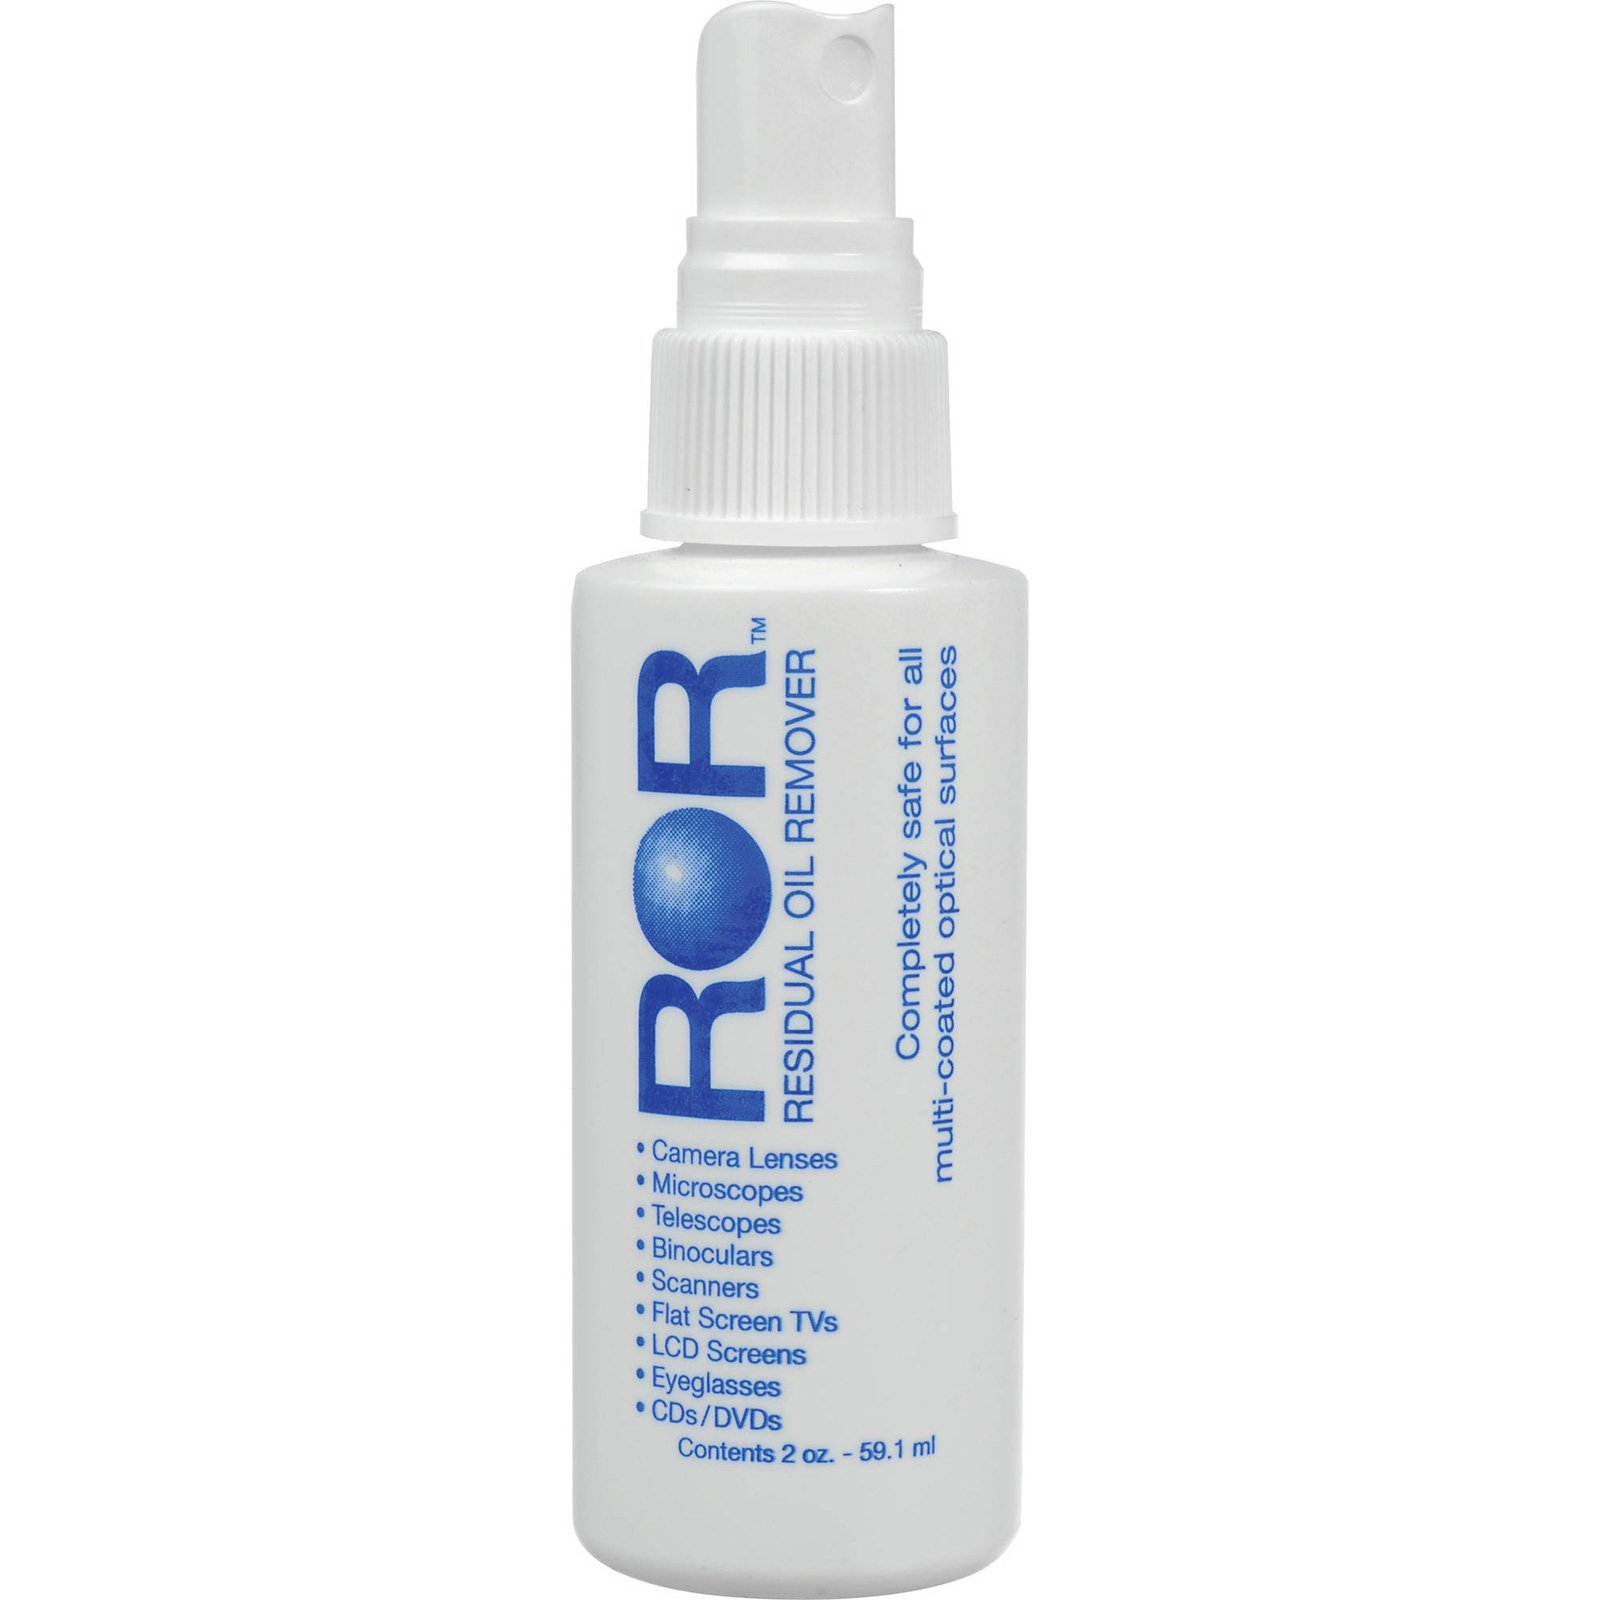 ROR Optical Lens Cleaner 2 Oz Spray Bottle by ROR